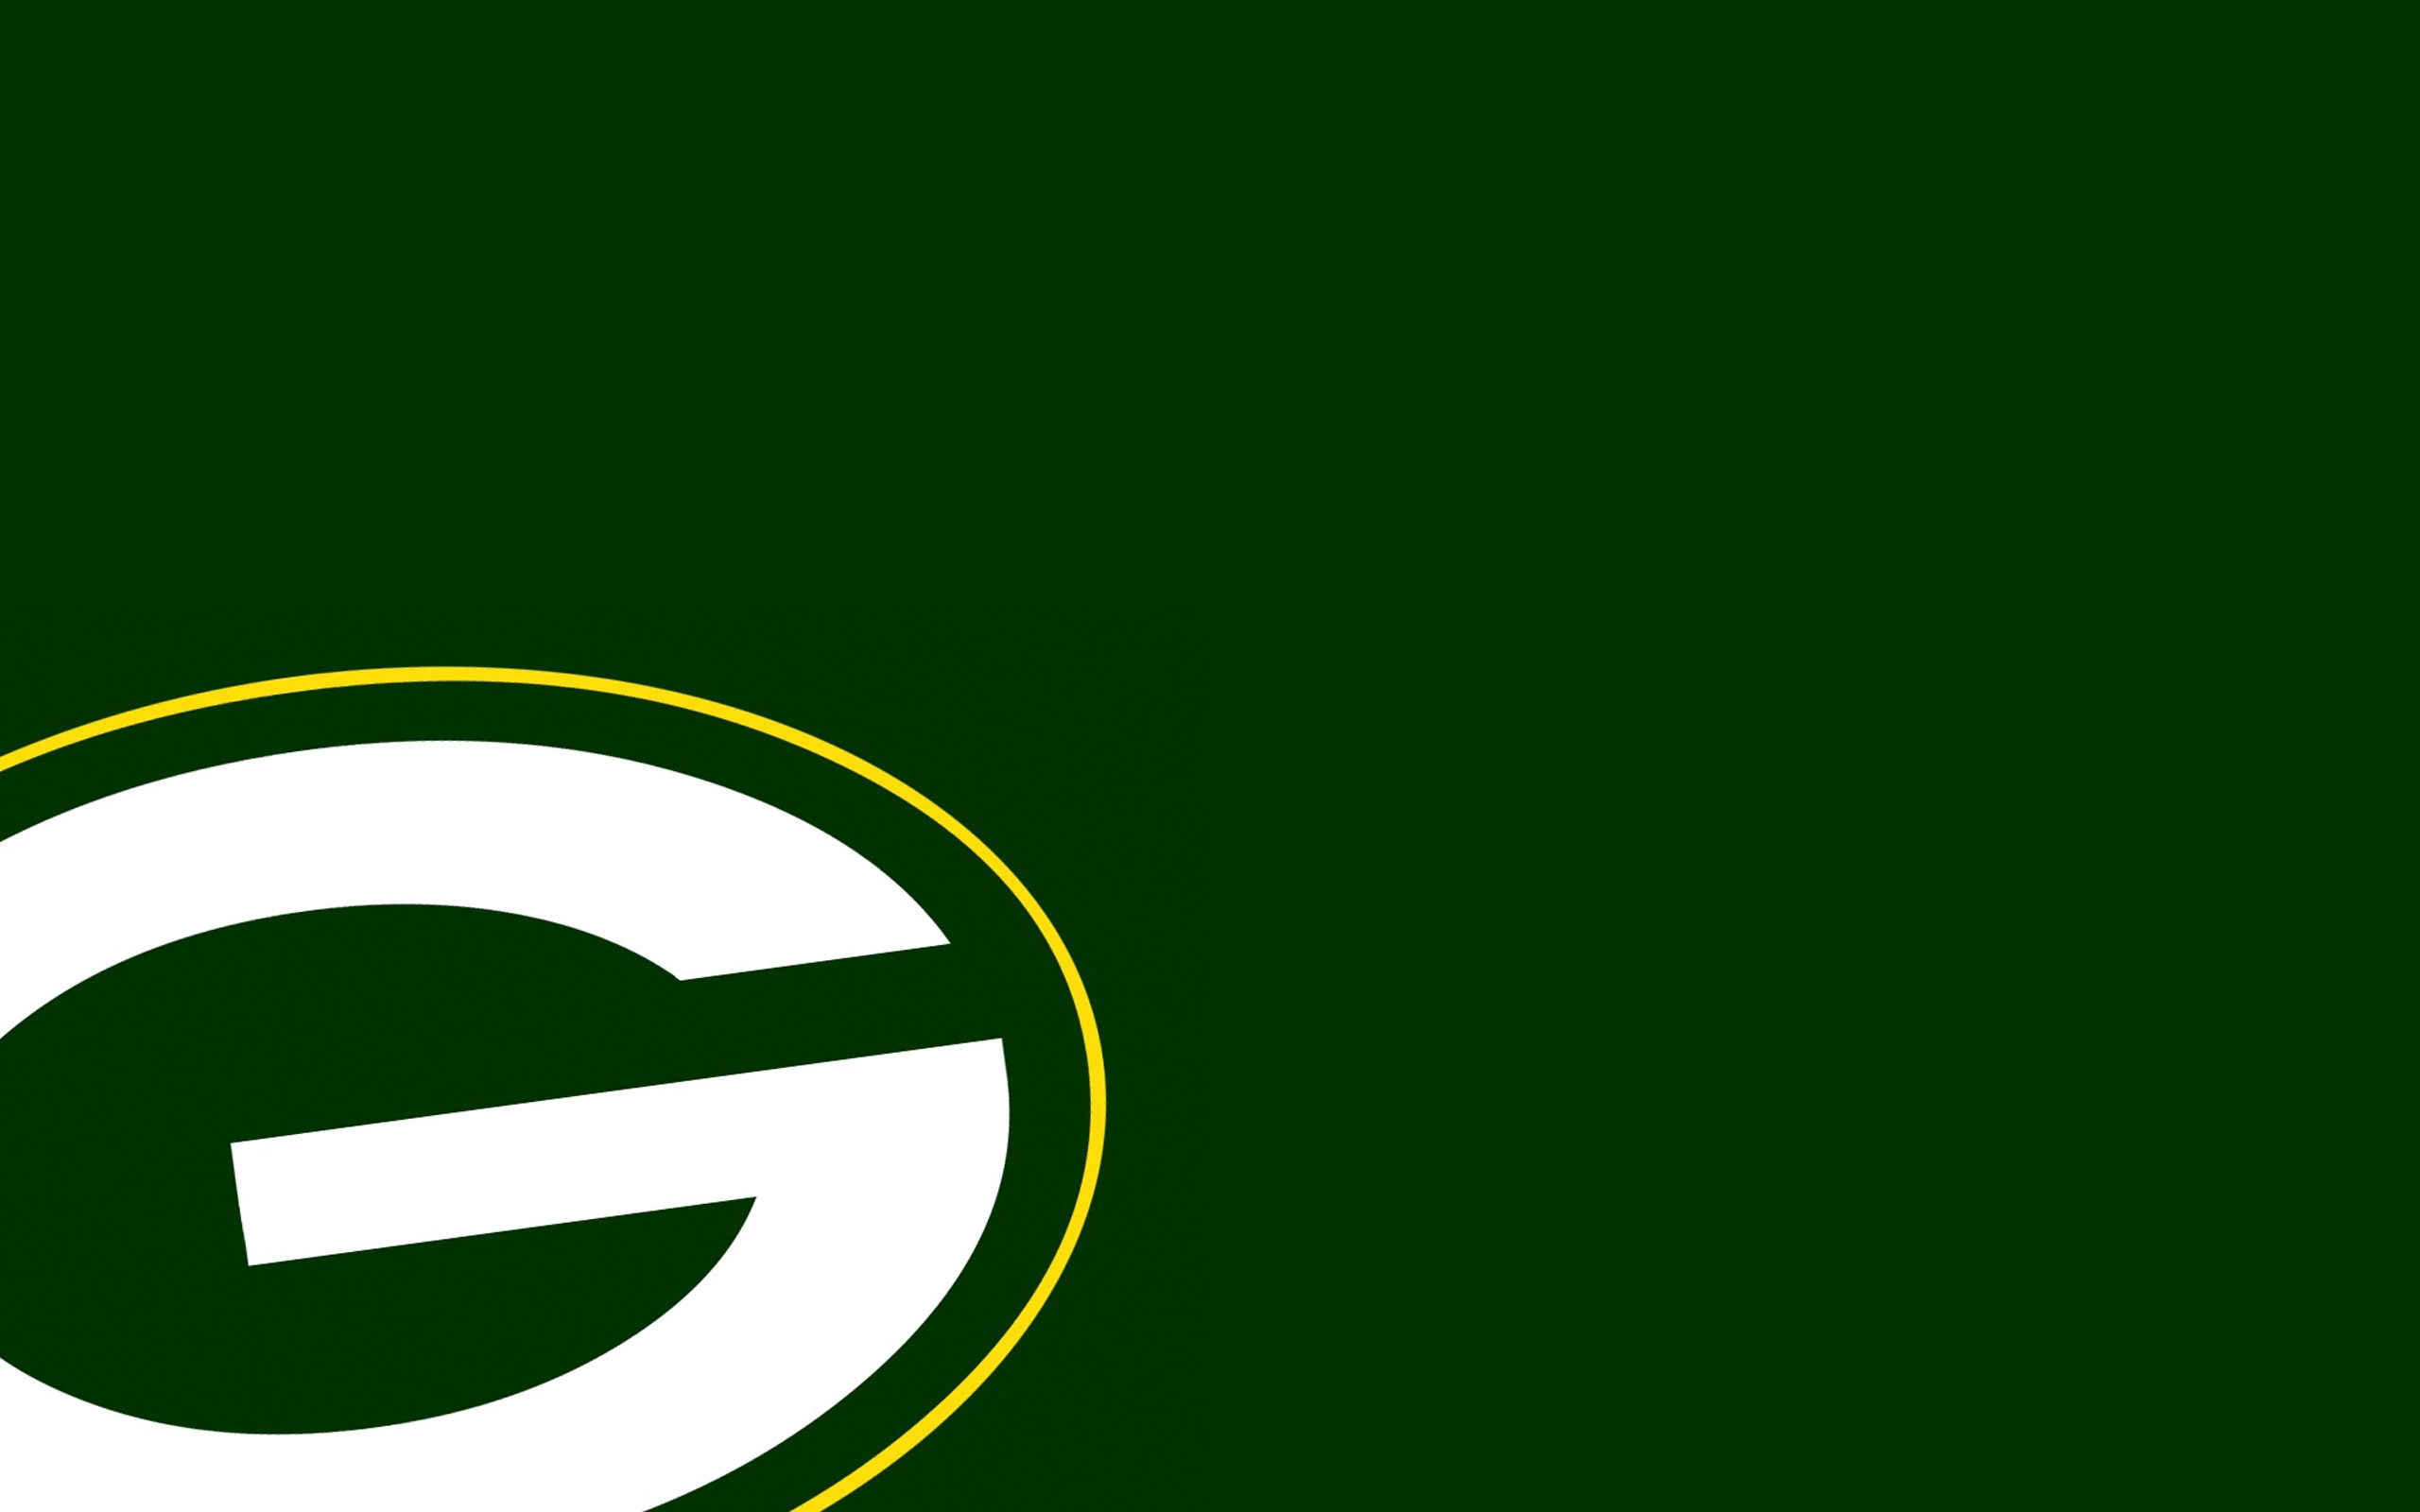 Packers Wallpaper 2560x1600 54125